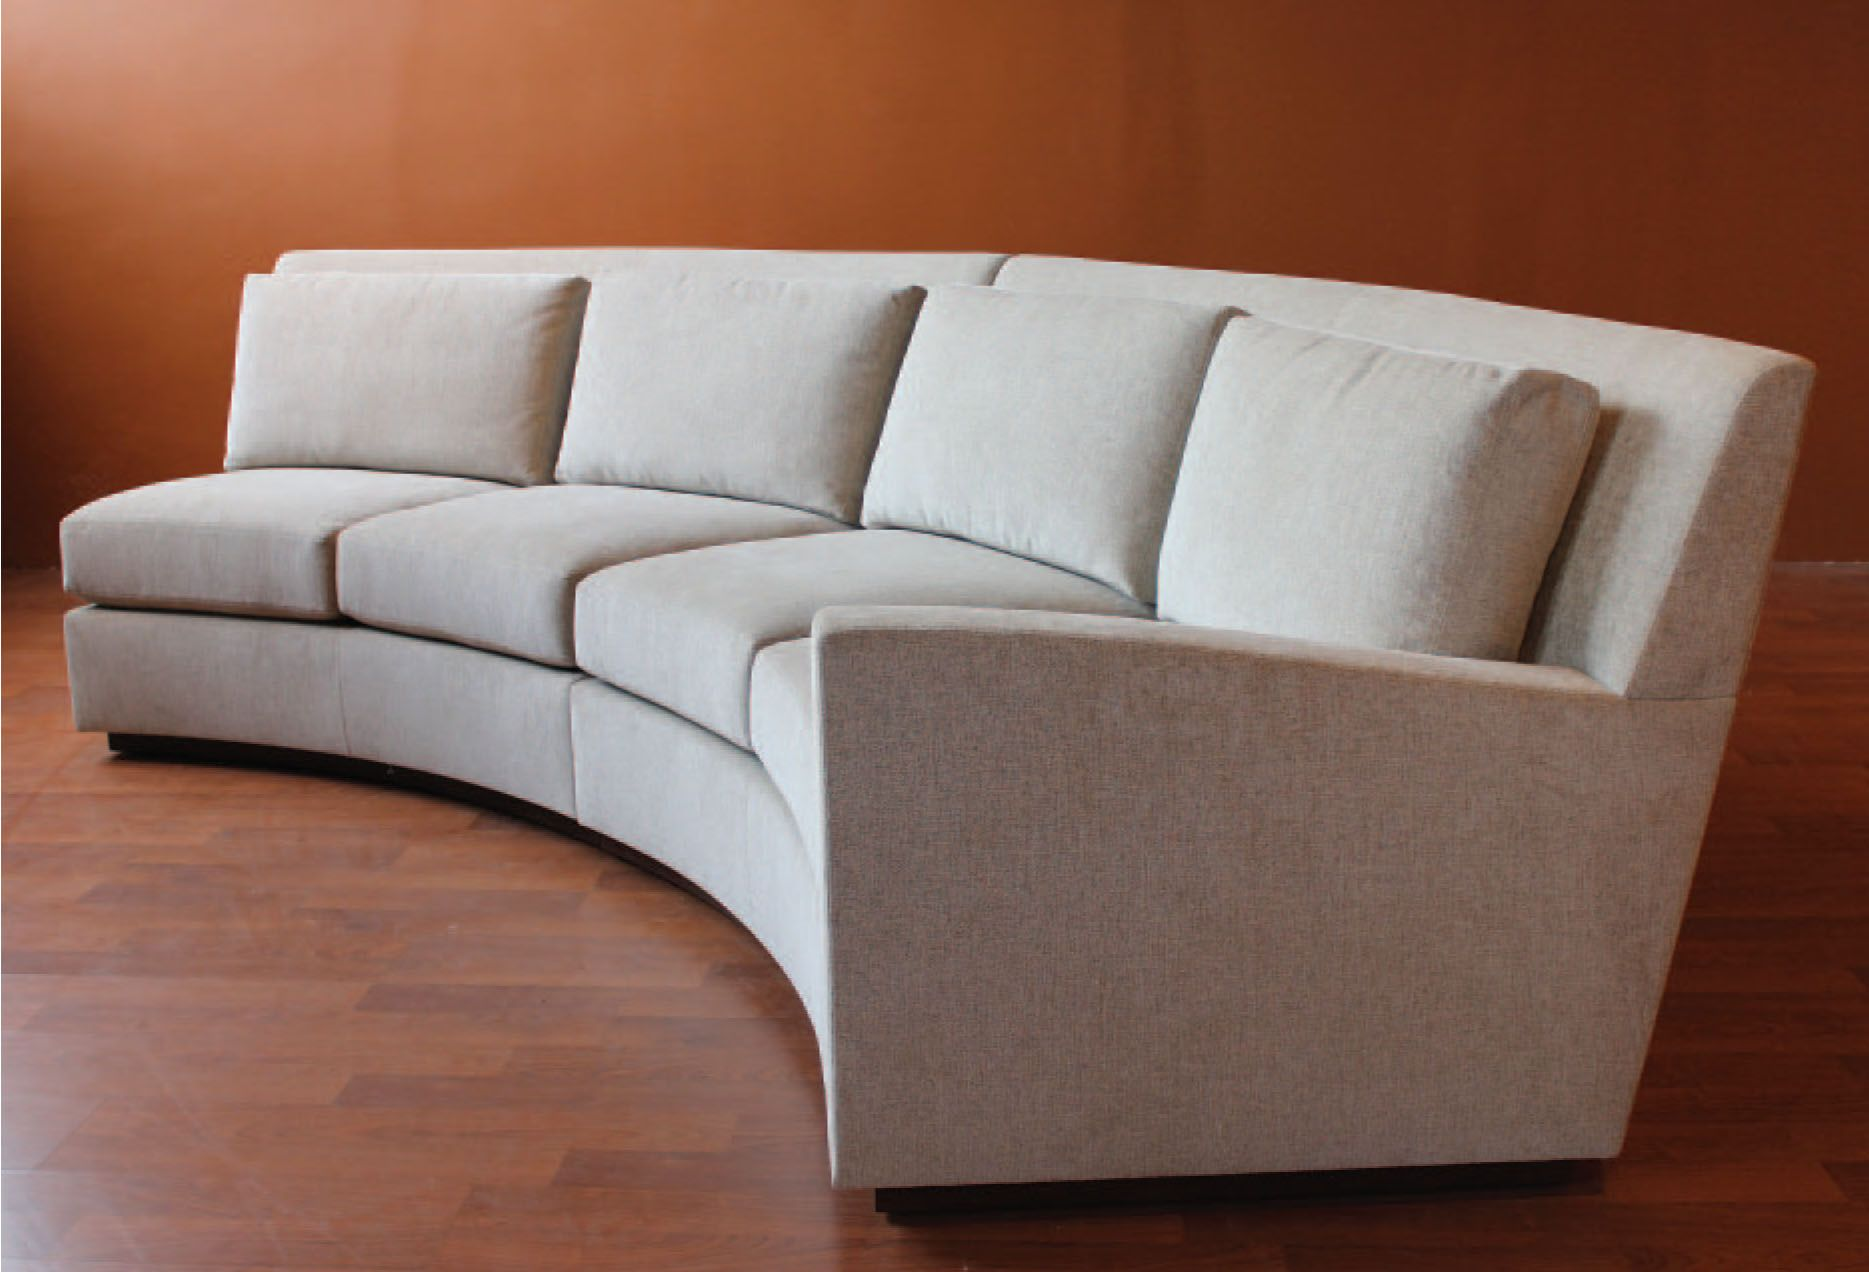 Curved Sofas And Loveseats Thomasville Derby Sofa Gets A Shout Out From Coco Kelly As Thesofa